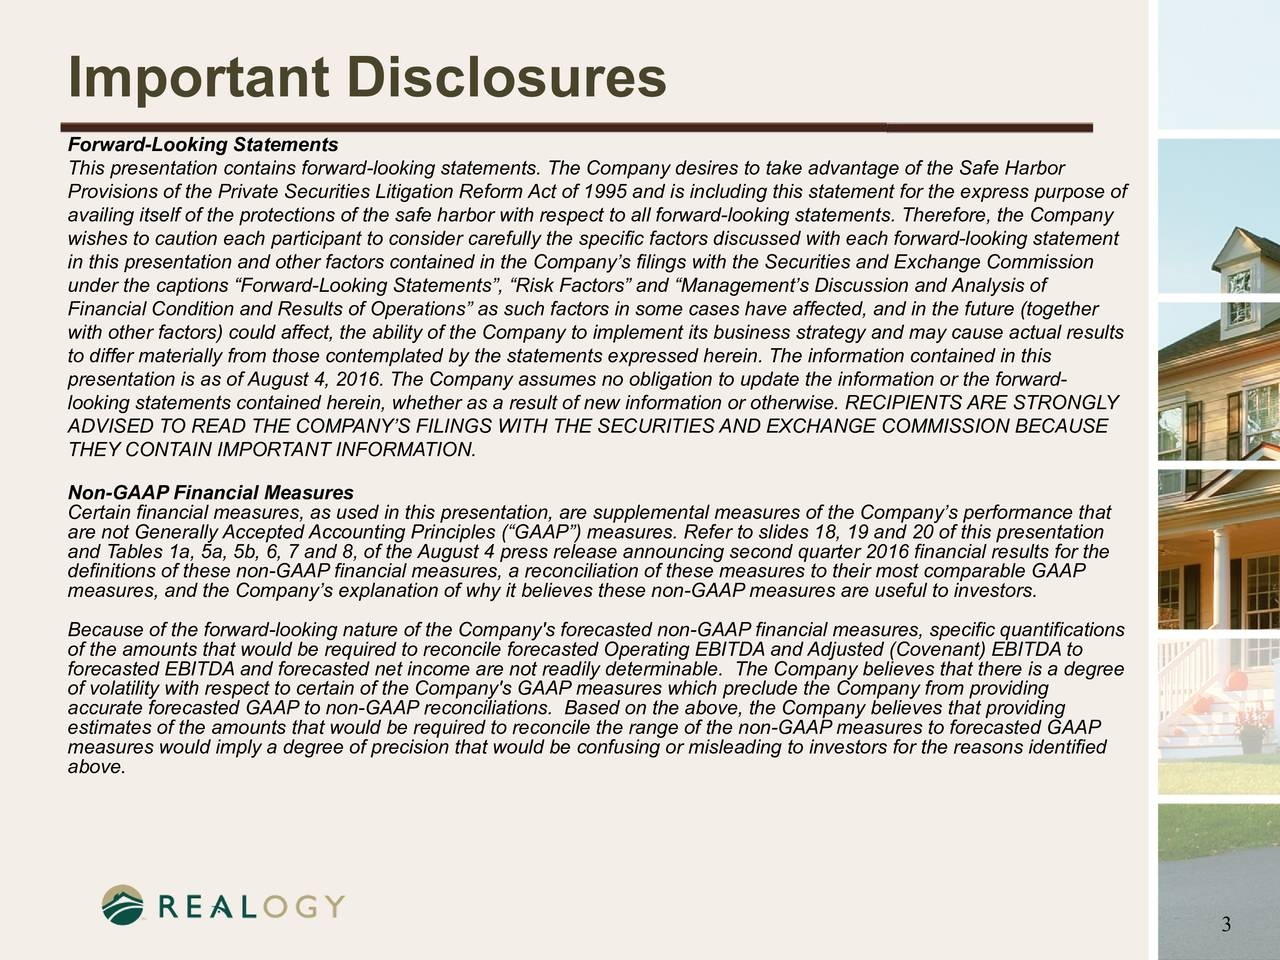 Forward-Looking Statements This presentation contains forward-looking statements. The Company desires to take advantage of the Safe Harbor Provisions of the Private Securities Litigation Reform Act of 1995 and is including this statement for the express purpose of availing itself of the protections of the safe harbor with respect to all forward-looking statements. Therefore, the Company wishes to caution each participant to consider carefully the specific factors discussed with each forward-looking statement in this presentation and other factors contained in the Companys filings with the Securities and Exchange Commission under the captions Forward-Looking Statements, Risk Factors and Managements Discussion and Analysis of Financial Condition and Results of Operations as such factors in some cases have affected, and in the future (together with other factors) could affect, the ability of the Company to implement its business strategy and may cause actual results to differ materially from those contemplated by the statements expressed herein. The information contained in this presentation is as of August4, 2016. The Company assumes no obligation to update the information or the forward- looking statements contained herein, whether as a result of new information or otherwise. RECIPIENTS ARE STRONGLY ADVISED TO READ THE COMPANYS FILINGS WITH THE SECURITIES AND EXCHANGE COMMISSION BECAUSE THEY CONTAIN IMPORTANT INFORMATION. Non-GAAP Financial Measures Certain financial measures, as used in this presentation, are supplemental measures of the Companys performance that are not Generally Accepted Accounting Principles (GAAP) measures. Refer to slides 18, 19 and 20 of this presentation and Tables 1a, 5a, 5b, 6, 7 and 8, of the August4 press release announcing second quarter 2016 financial results for the definitions of these non-GAAP financial measures, a reconciliation of these measures to their most comparable GAAP measures, and the Companys explanation of why it believes